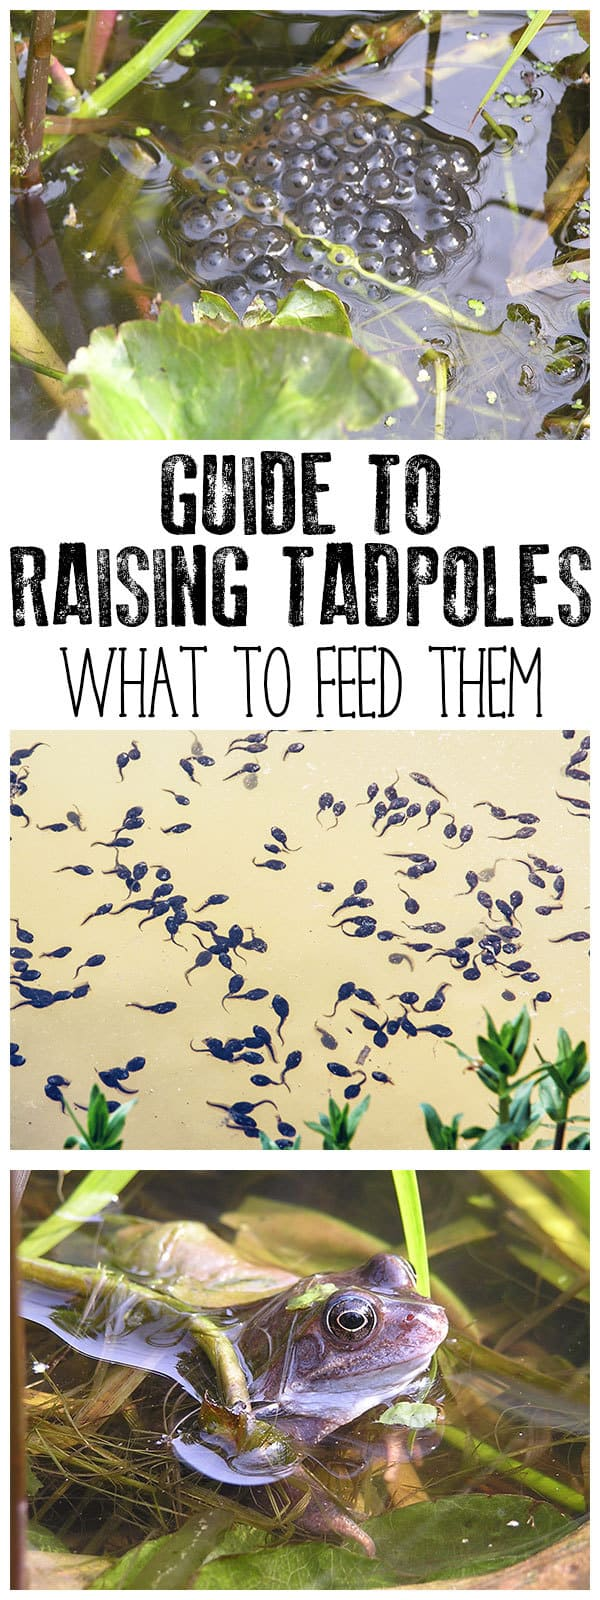 Raising tadpoles is a fantastic way for kids to connect with nature but what do you feed tadpoles as you watch them change. Discover what you can feed tadpoles at different stages of development with these easy recipes for tadpole food.